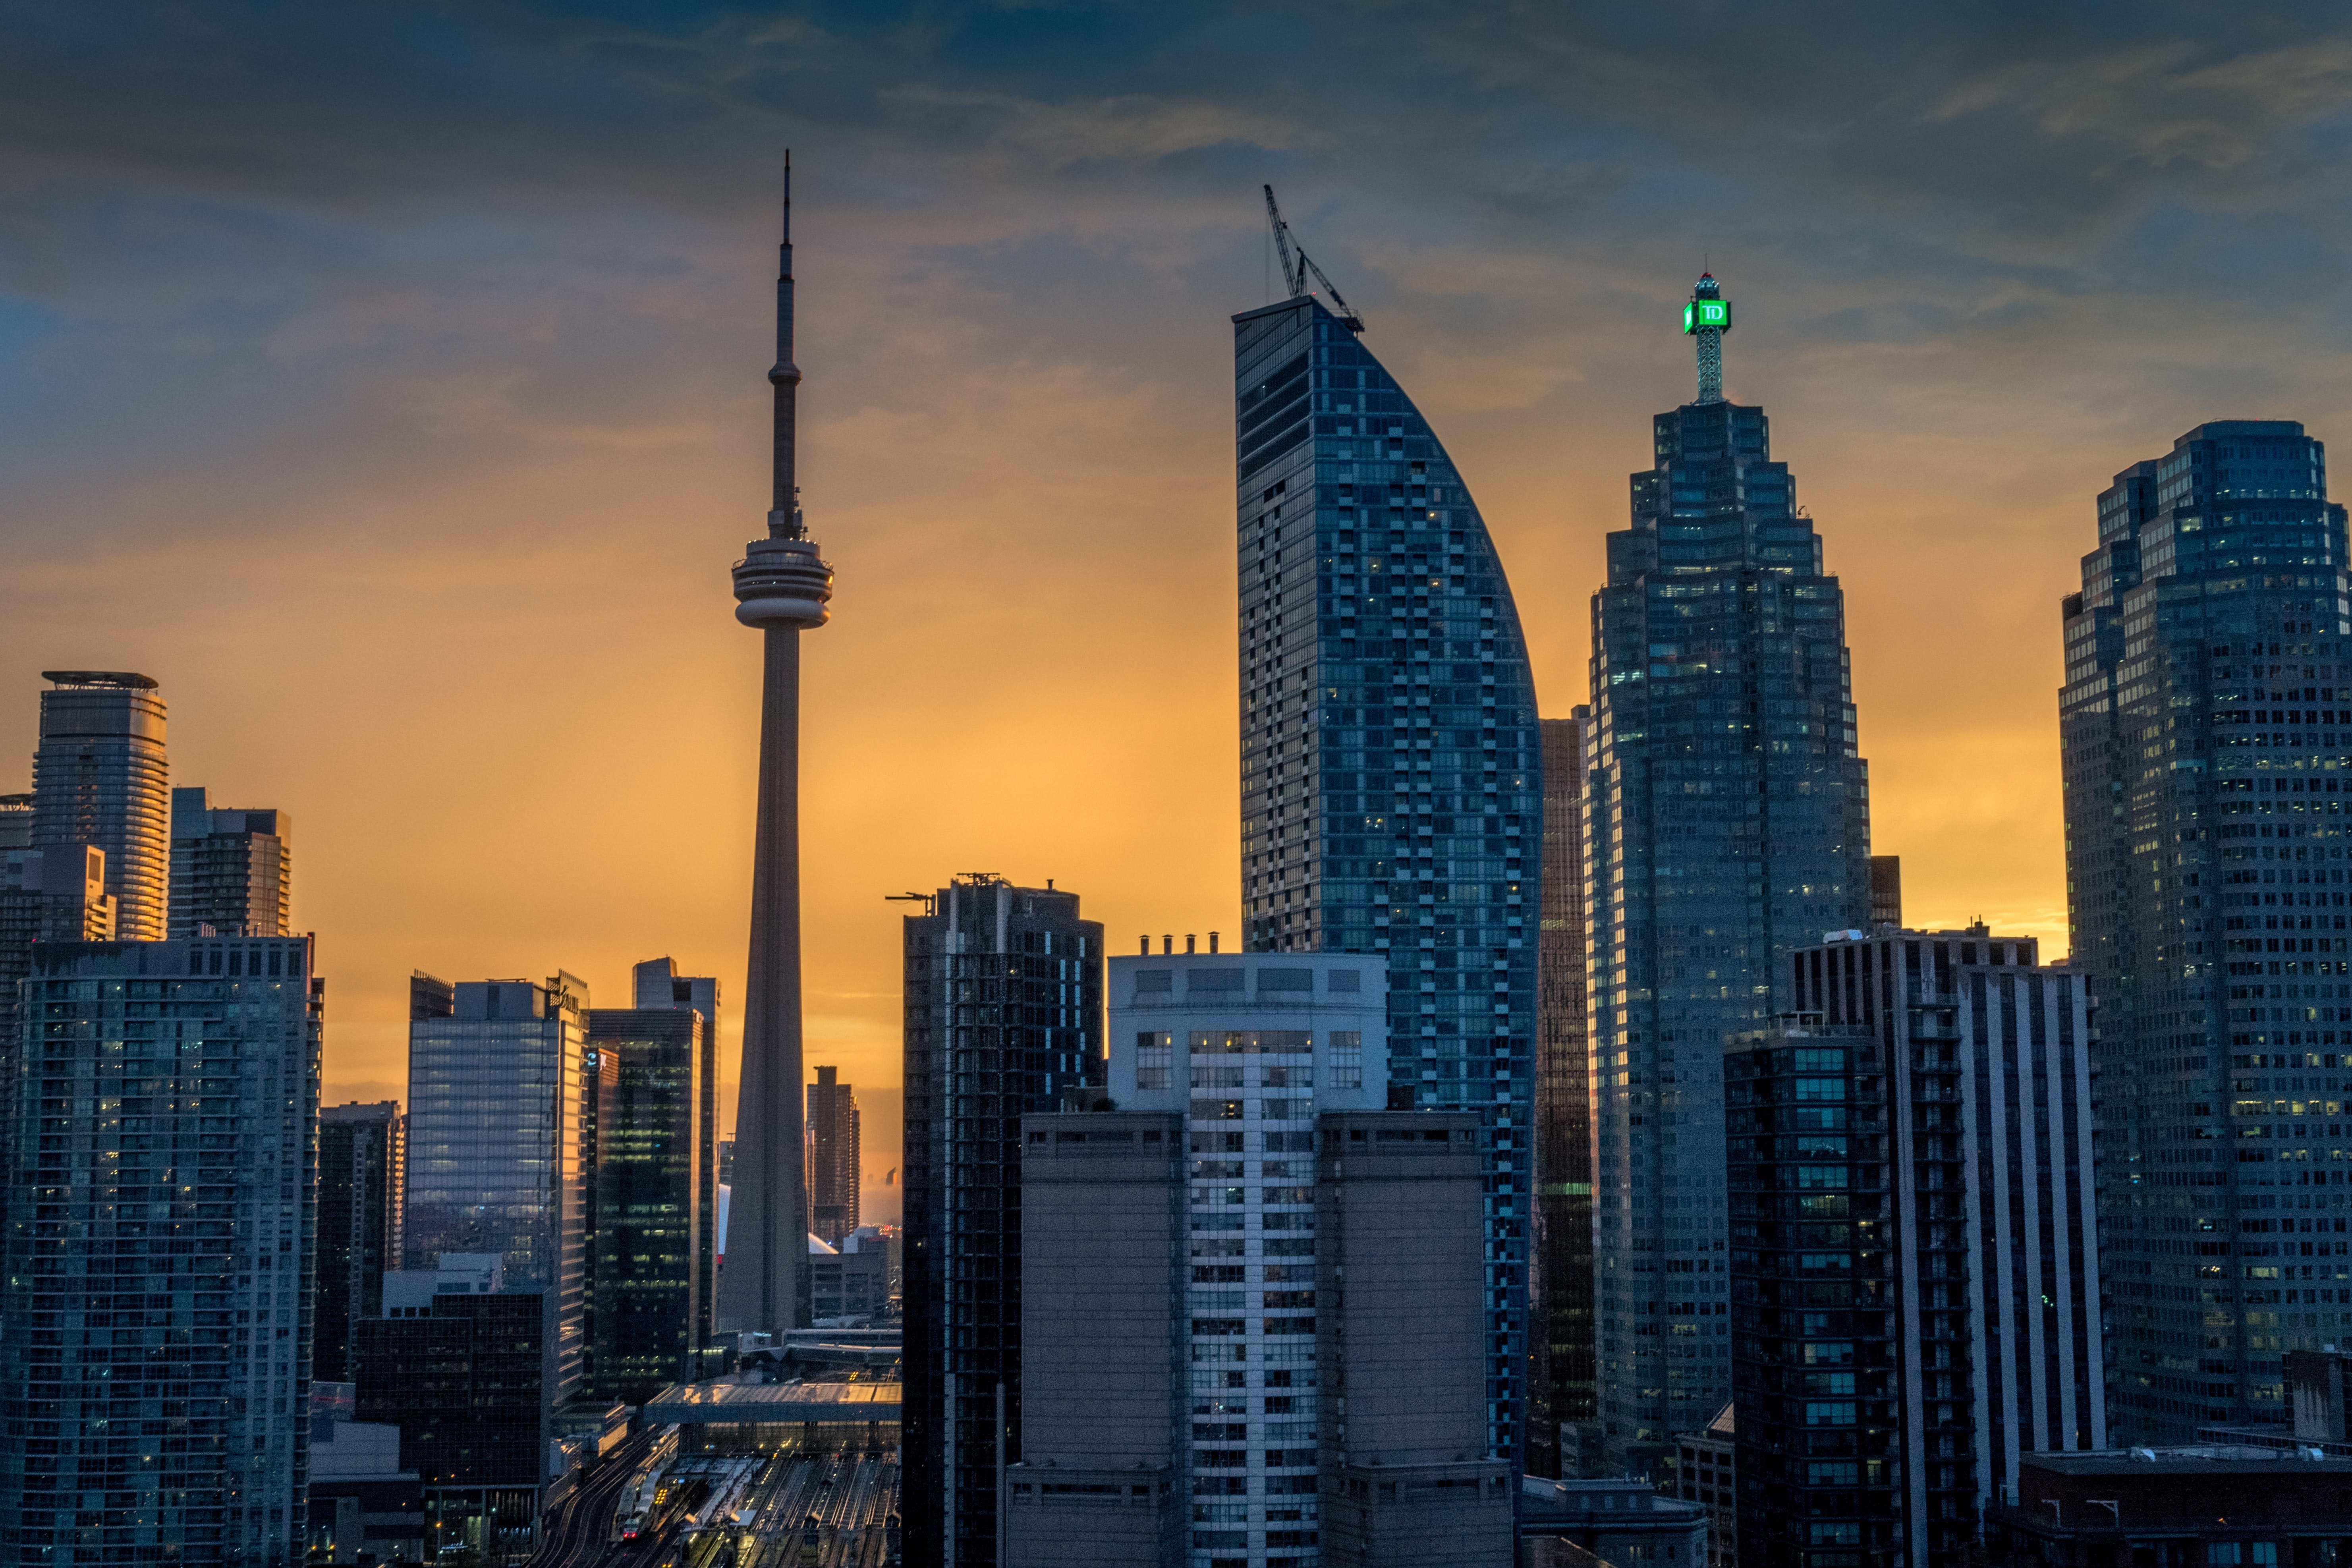 Jethro Seymour, one of the Top Midtown Toronto Real Estate Brokers, provides you with Canadian real estate news headlines (June 7th, 2018)